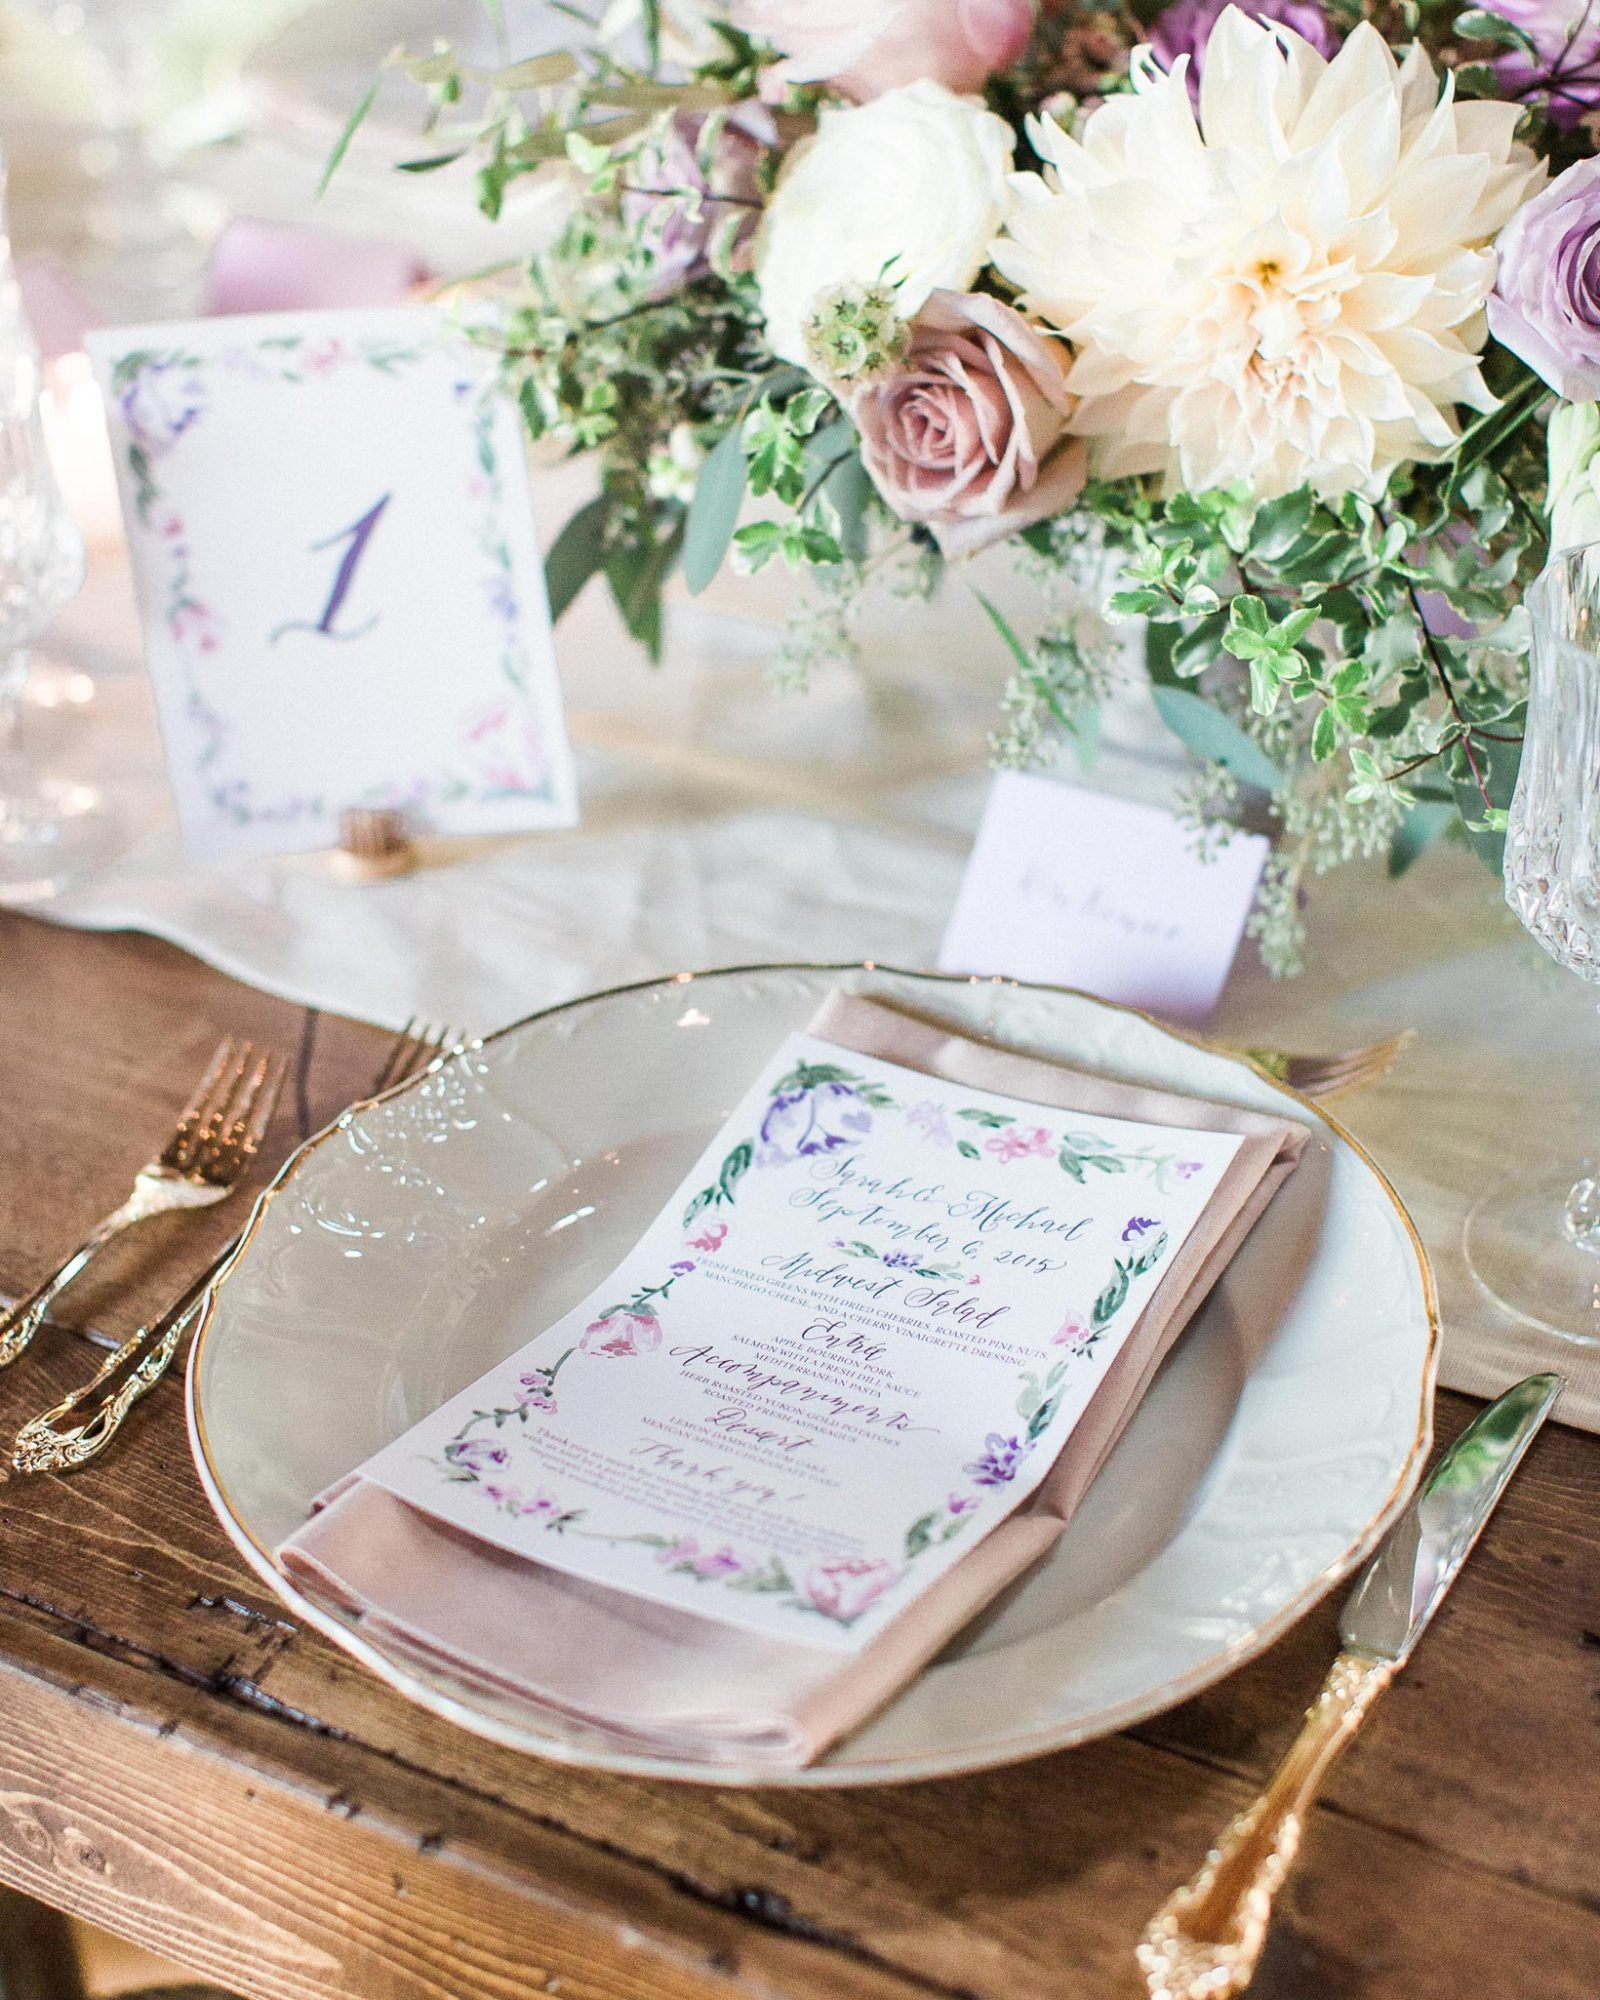 The Table Décor